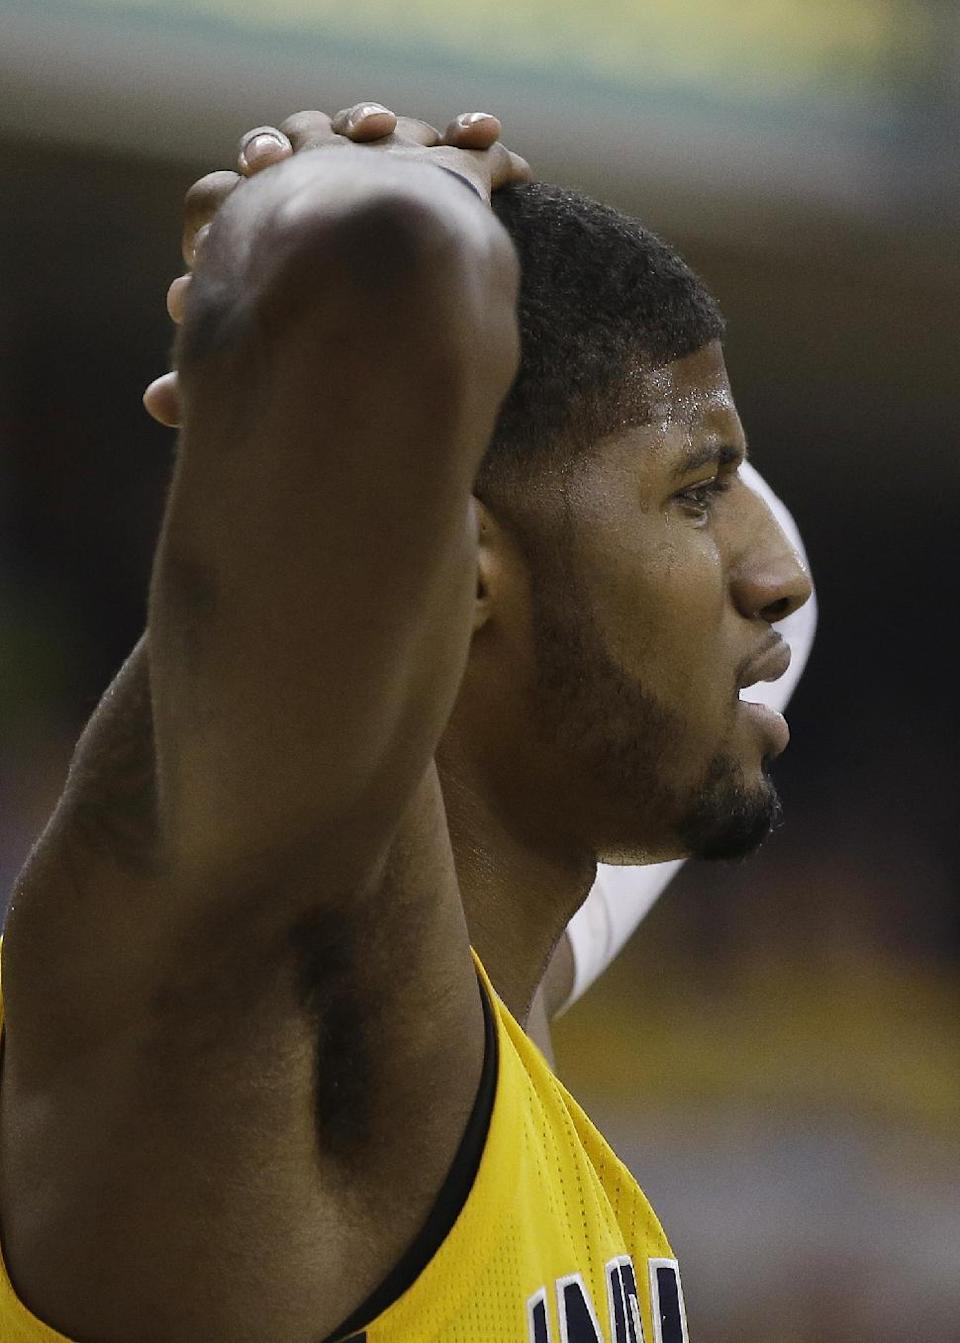 Indiana Pacers' Paul George reacts after being called for a foul during the first half in Game 1 of an opening-round NBA basketball playoff series against the Atlanta Hawks, Saturday, April 19, 2014, in Indianapolis. (AP Photo/Darron Cummings)